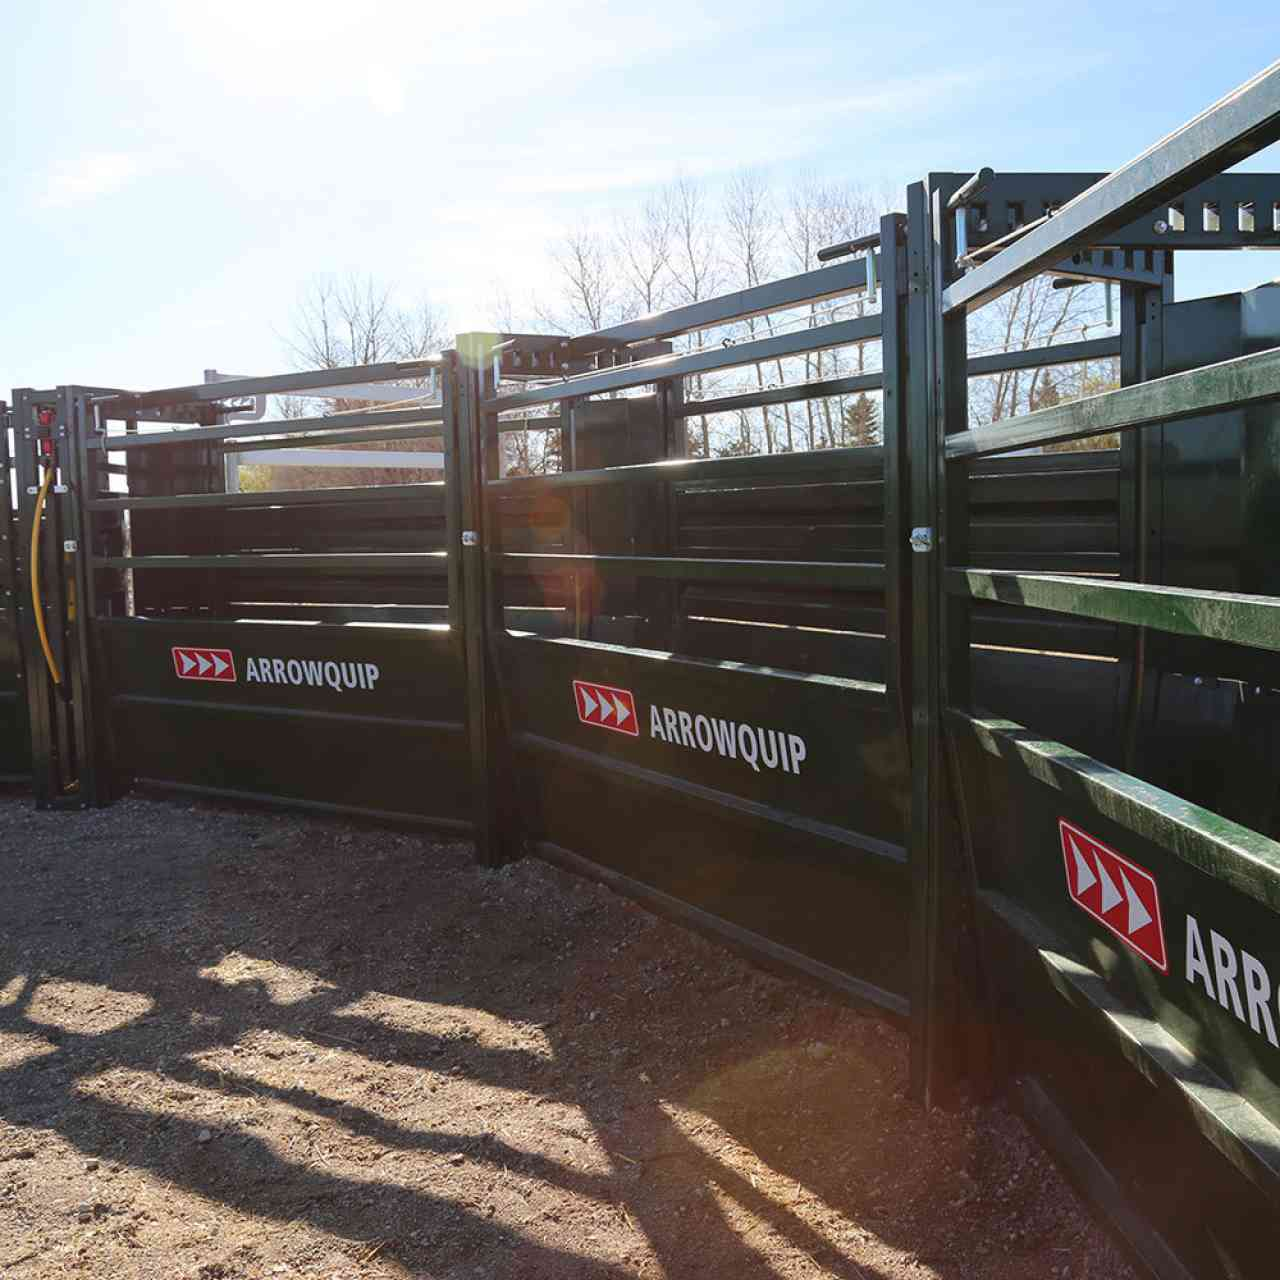 Adjustable panels on Easy Flow Curved Cattle Alley allow handlers to control what cattle see